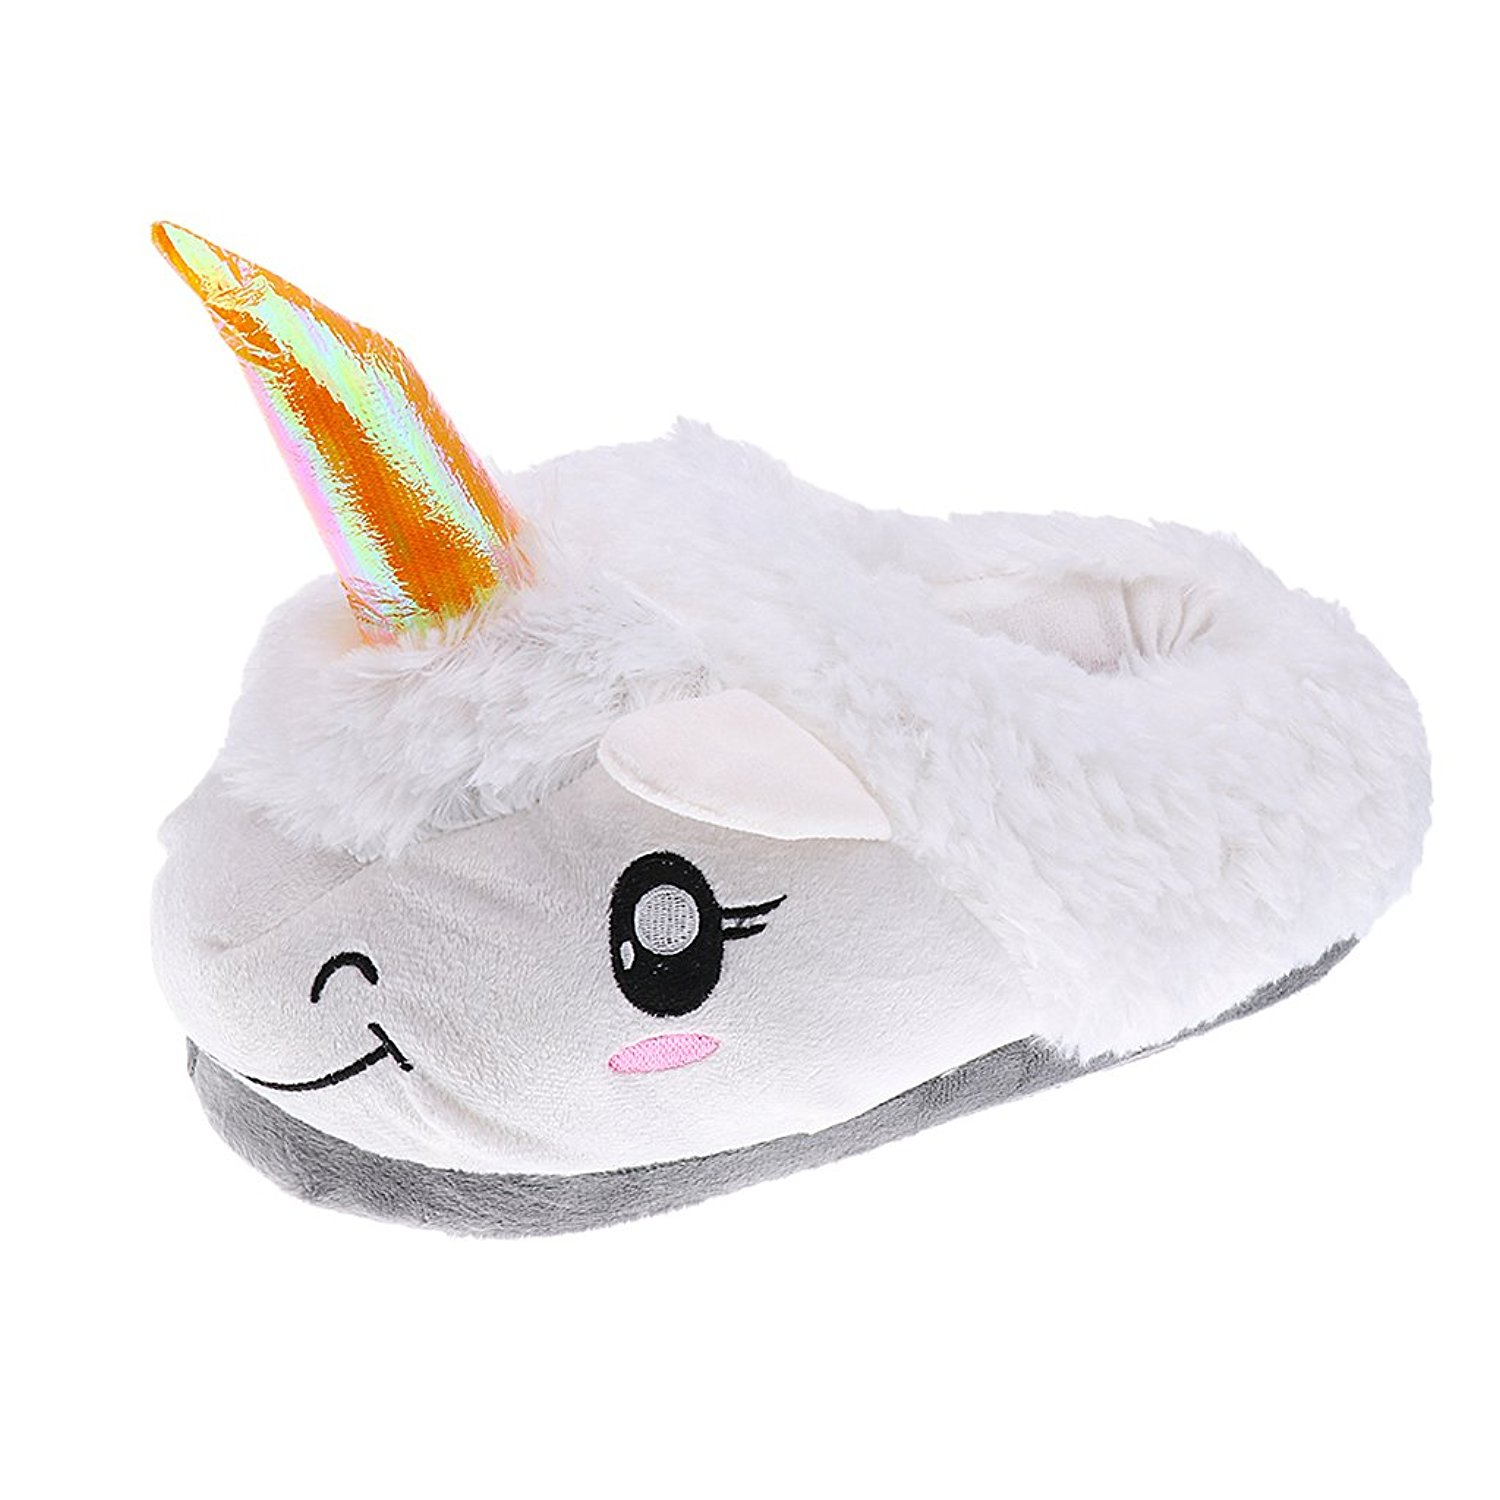 09381ca25 Get Quotations · Dovewill Mens Womens Novelty Unicorn Slip On Plush Slippers  Cosy Fluffy Cotton Shoes